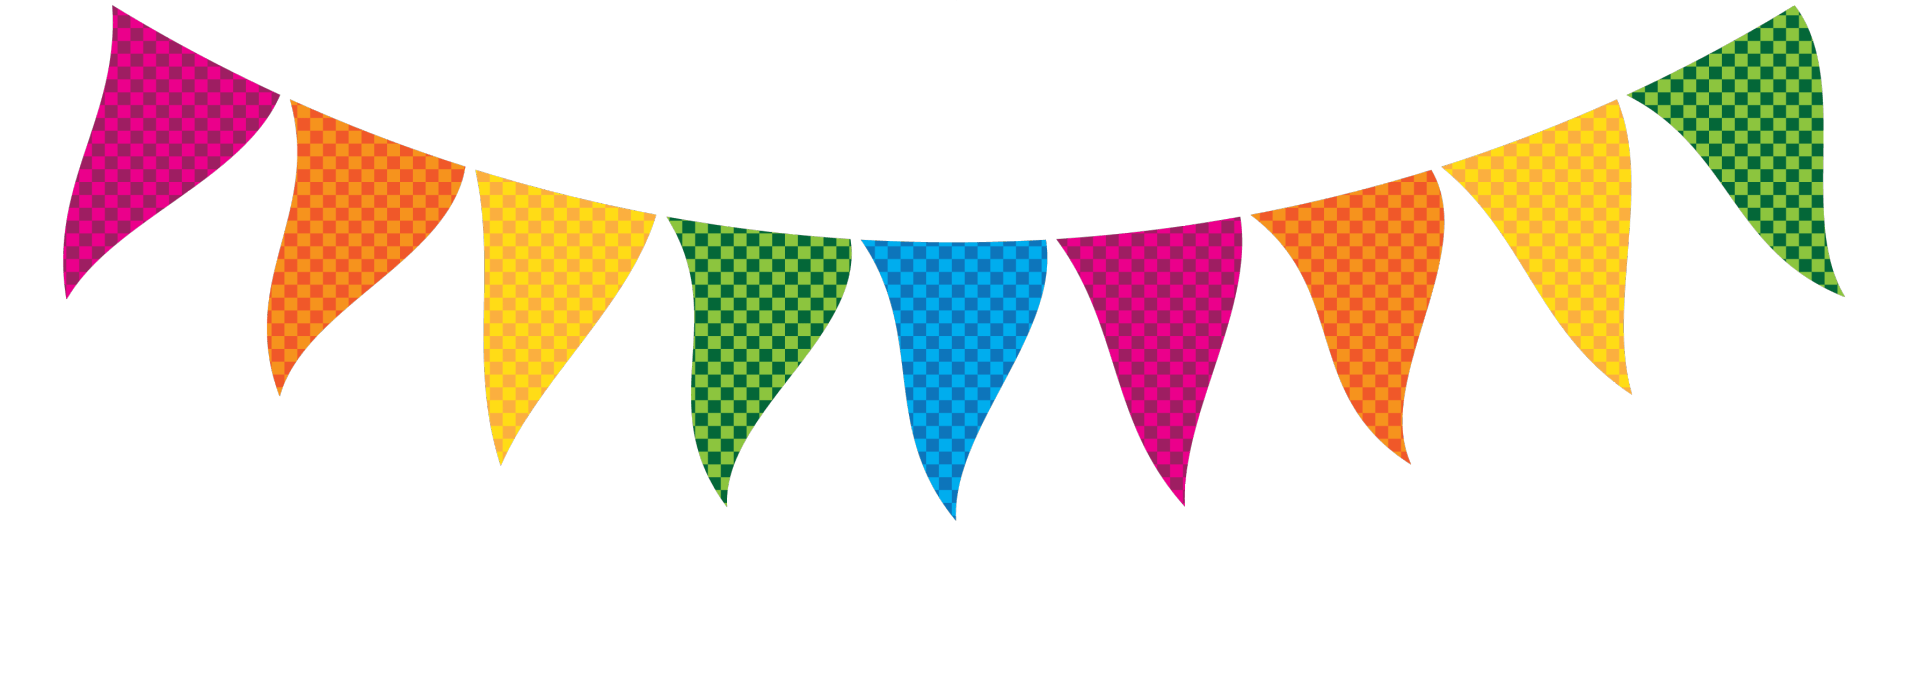 Triangle word cliparts free. Streamers clipart party banner